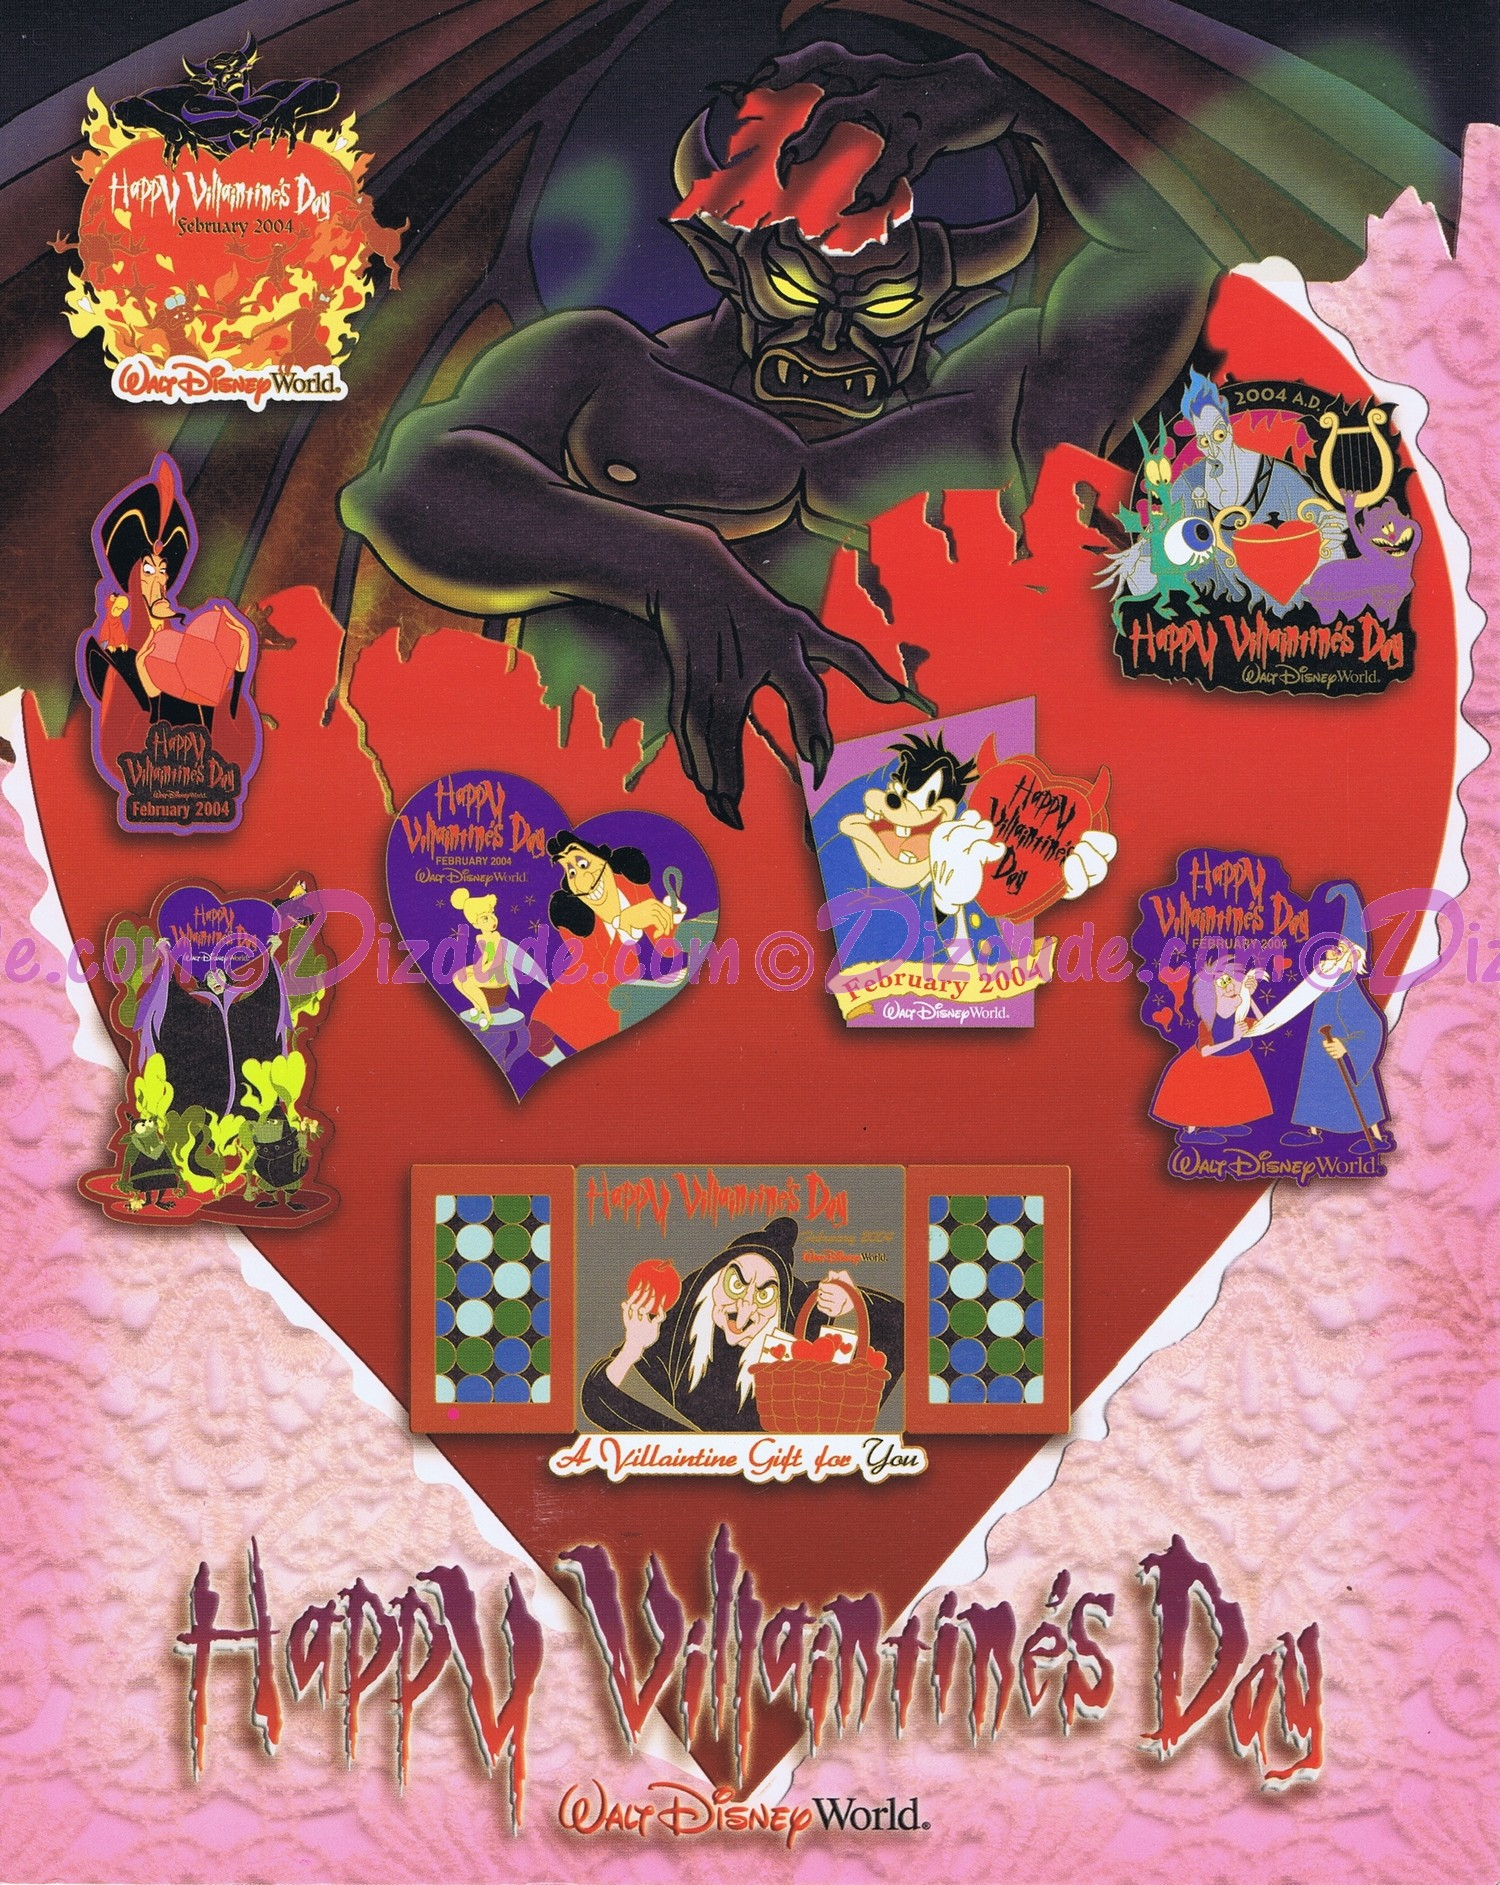 Walt Disney World - Happy Villaintine's Day 2004 Pin-Board © Dizdude.com